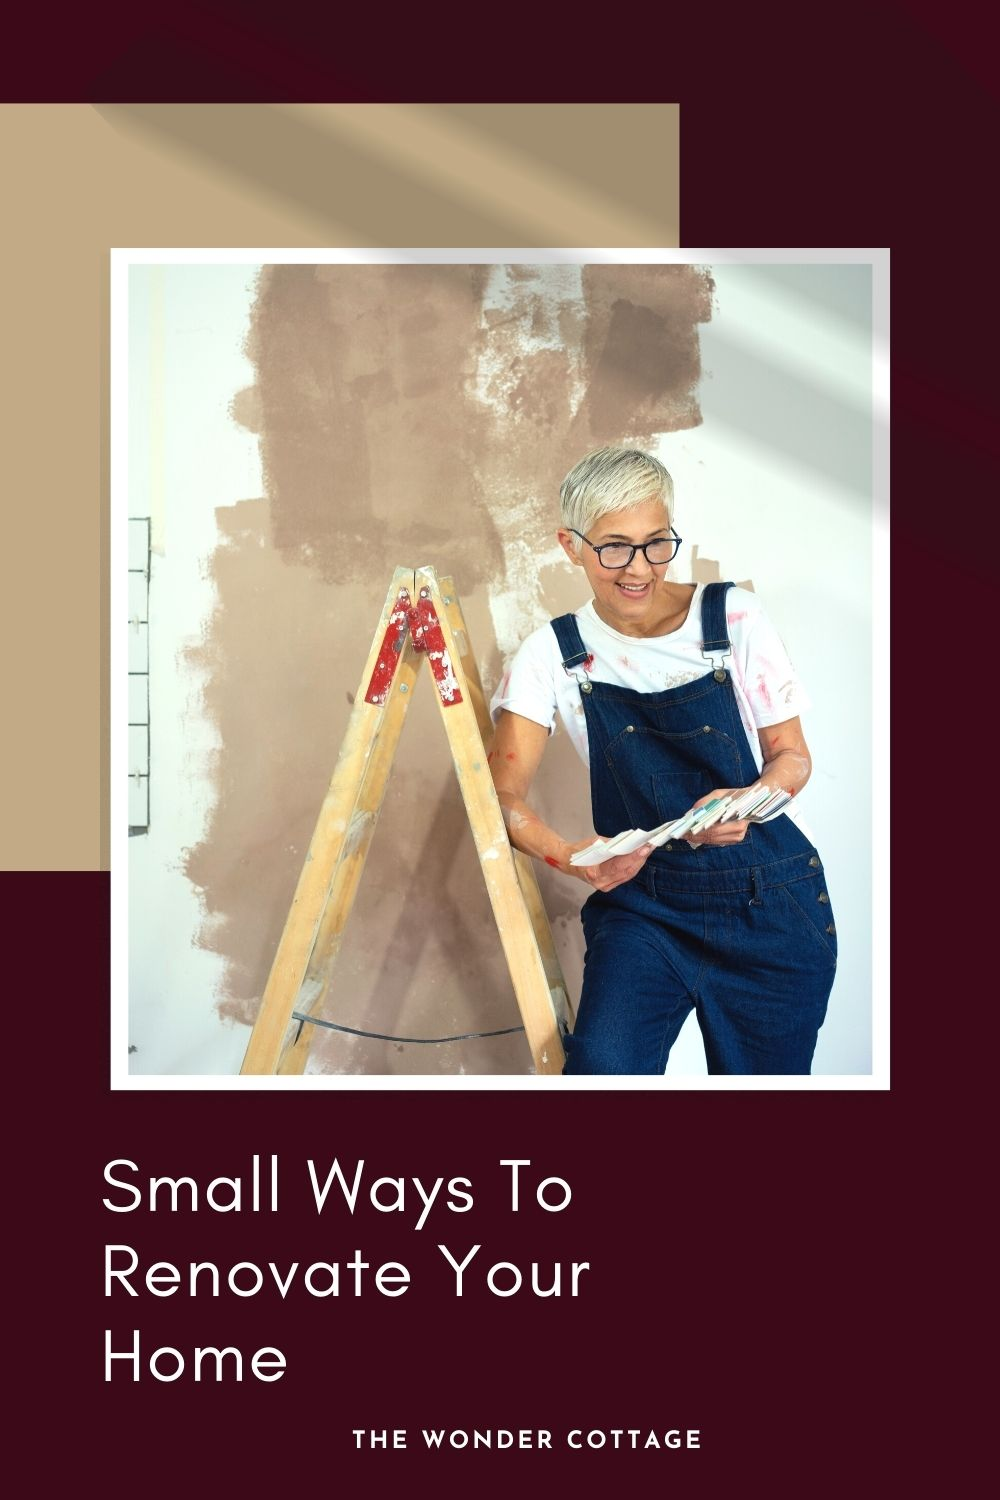 Small ways to renovate your home